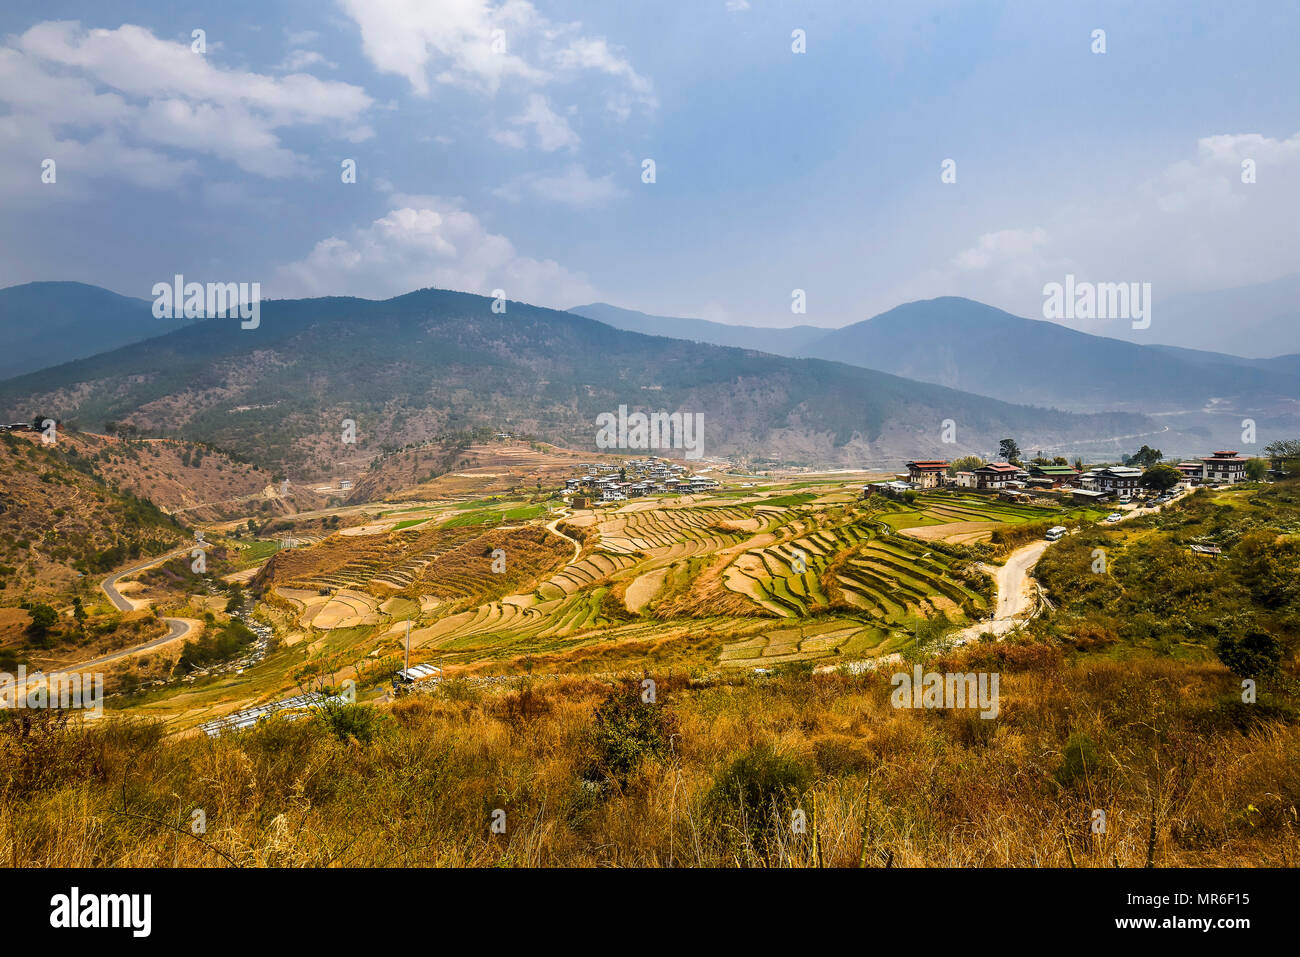 View of Lobesa and rice terraces, Punakha district, Bhutan - Stock Image